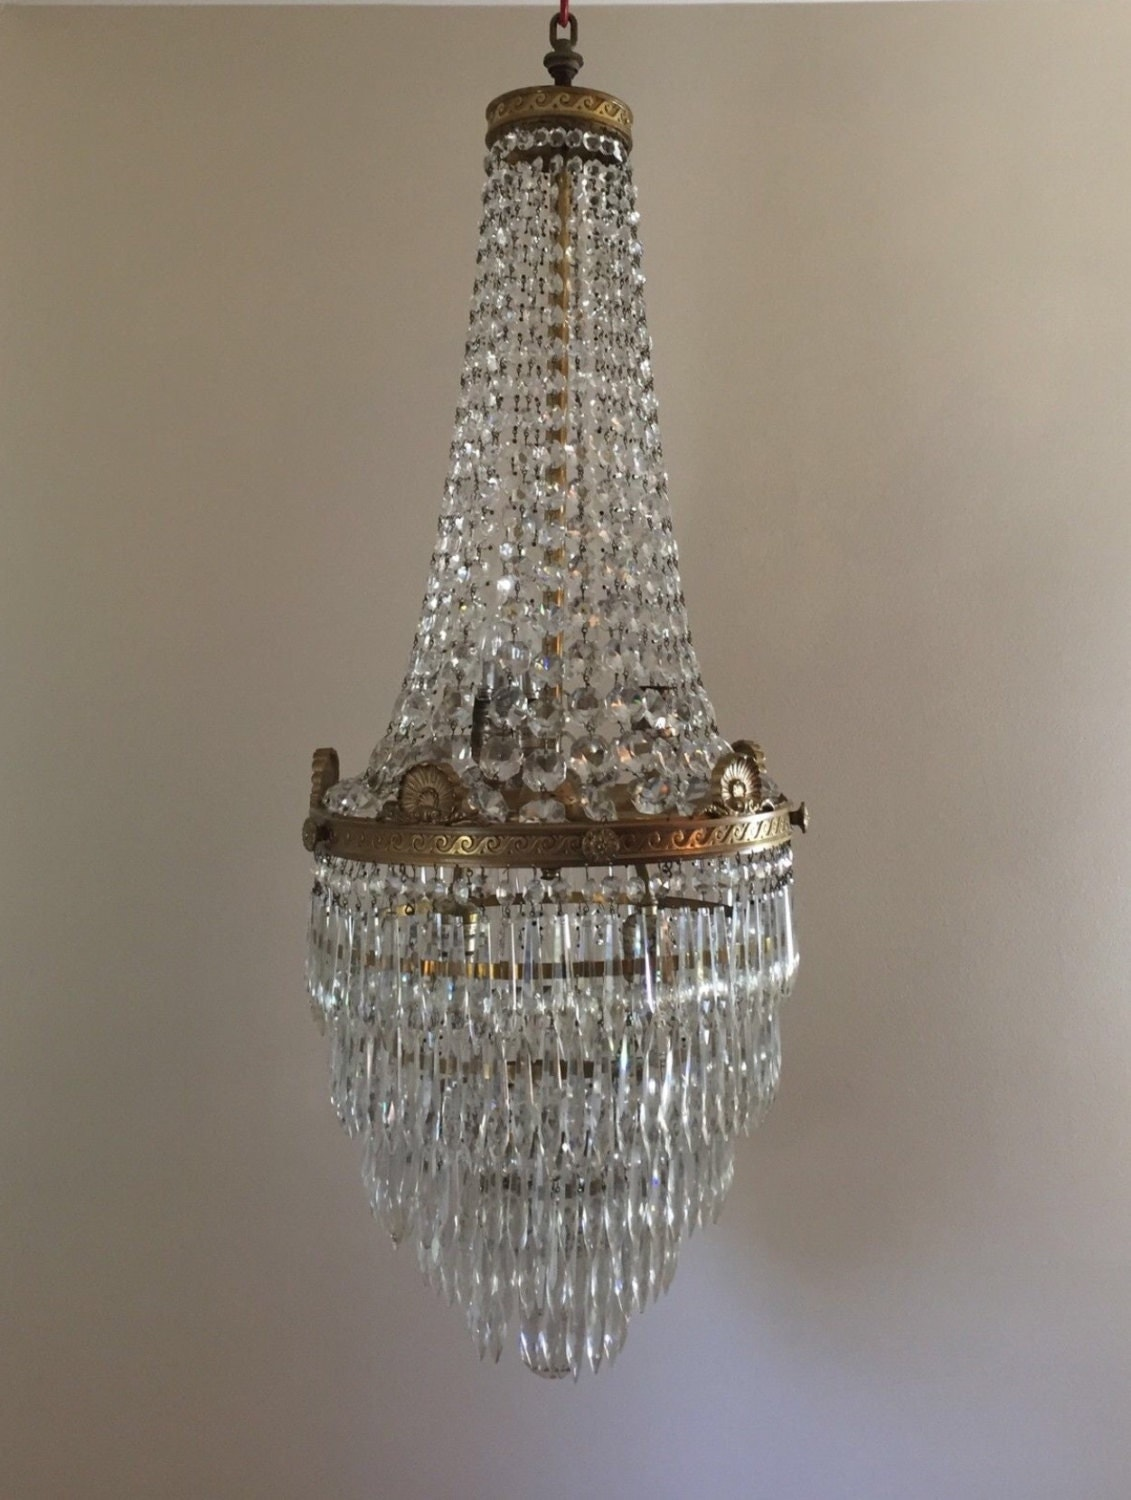 Antique French Empire Basket Wedding Cake Crystal Chandelier Ceiling Fixtue - Antique French Empire Basket Wedding Cake Crystal Chandelier